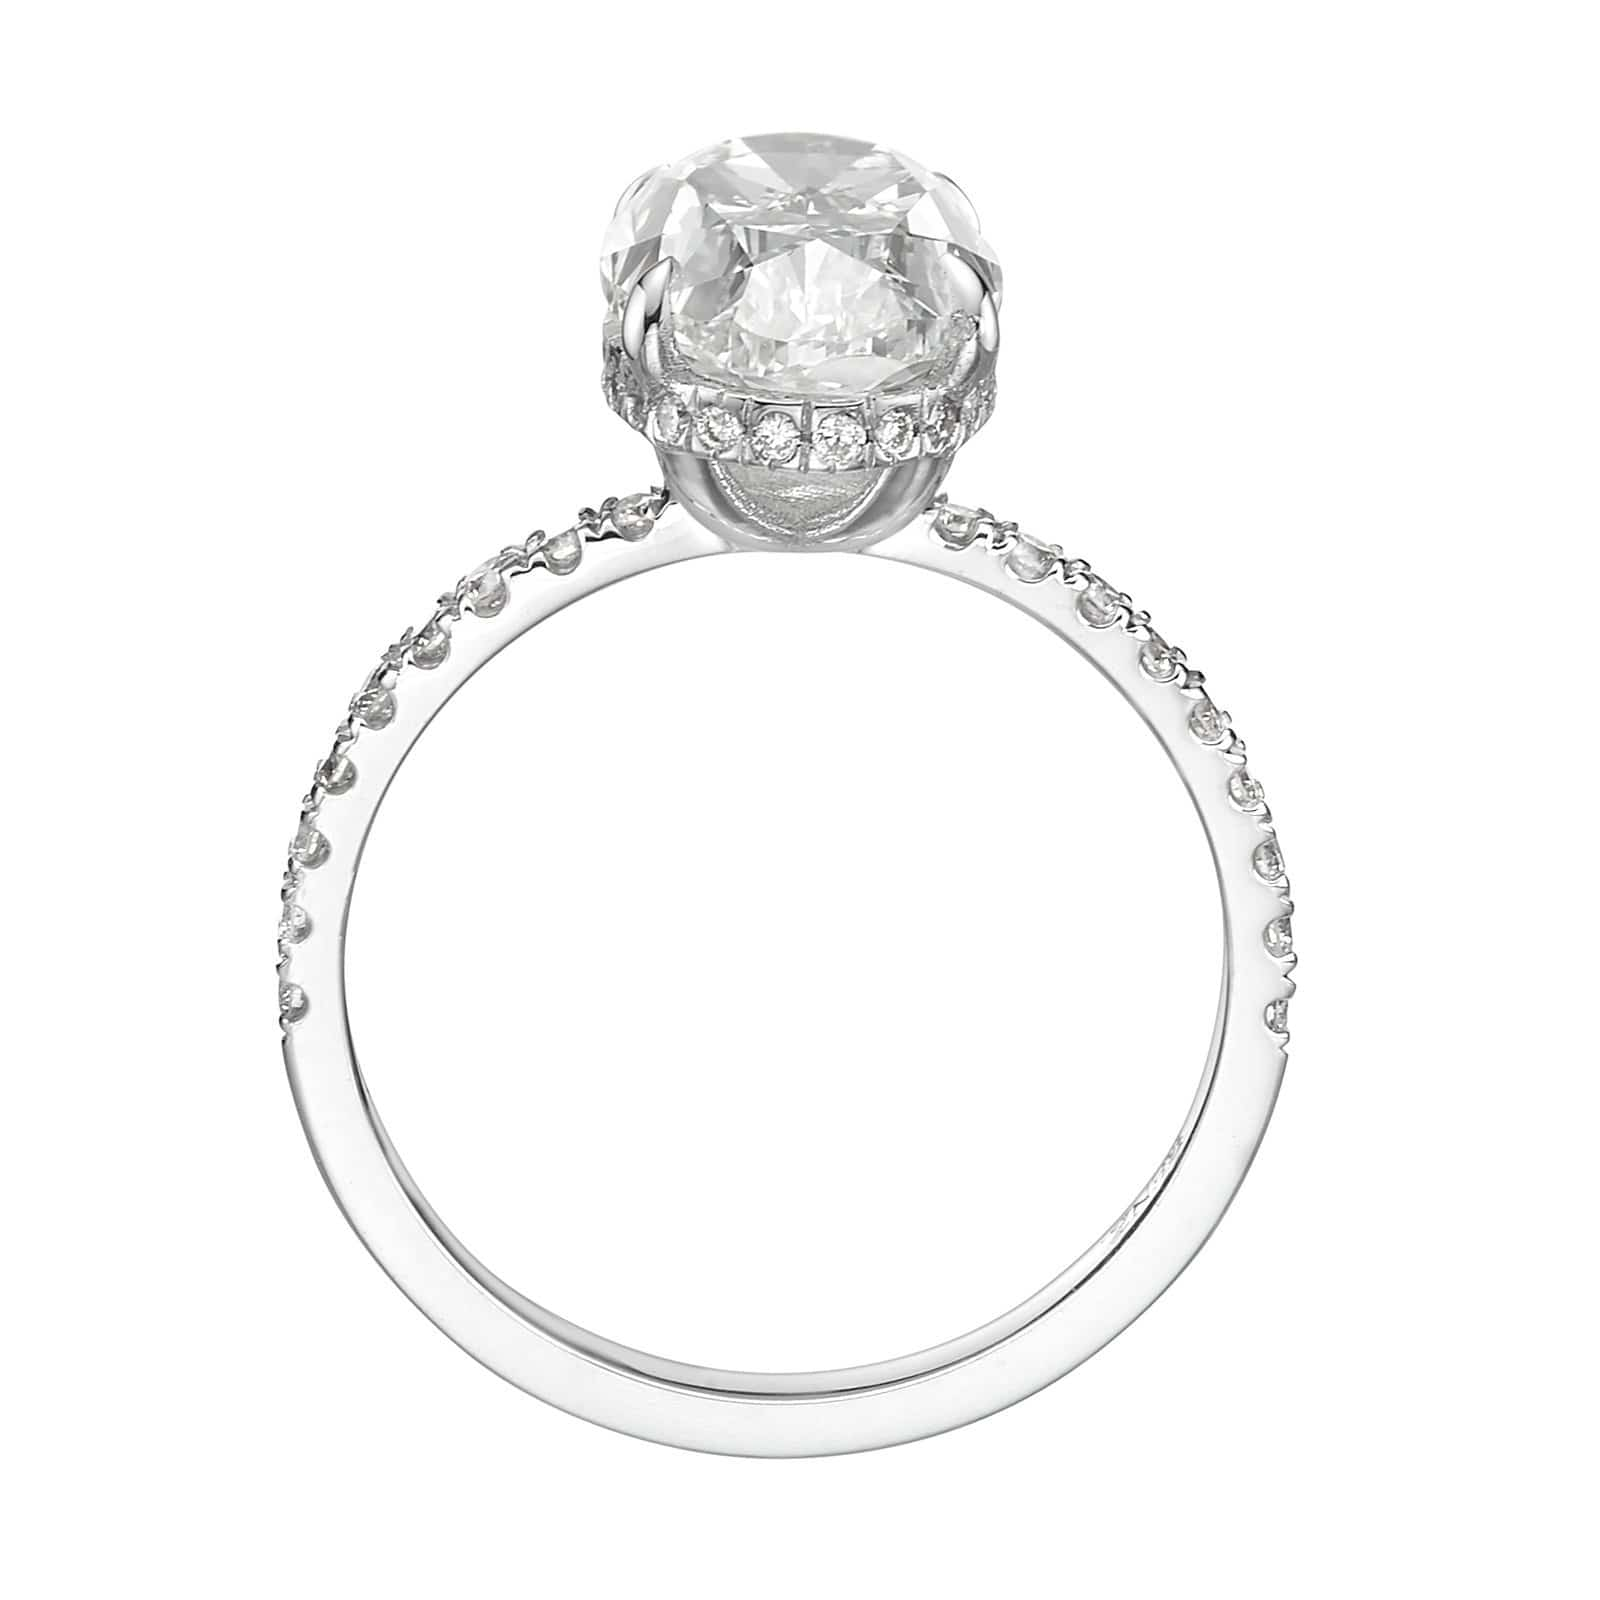 4.52 ct Oval Cut Diamond Engagement Ring